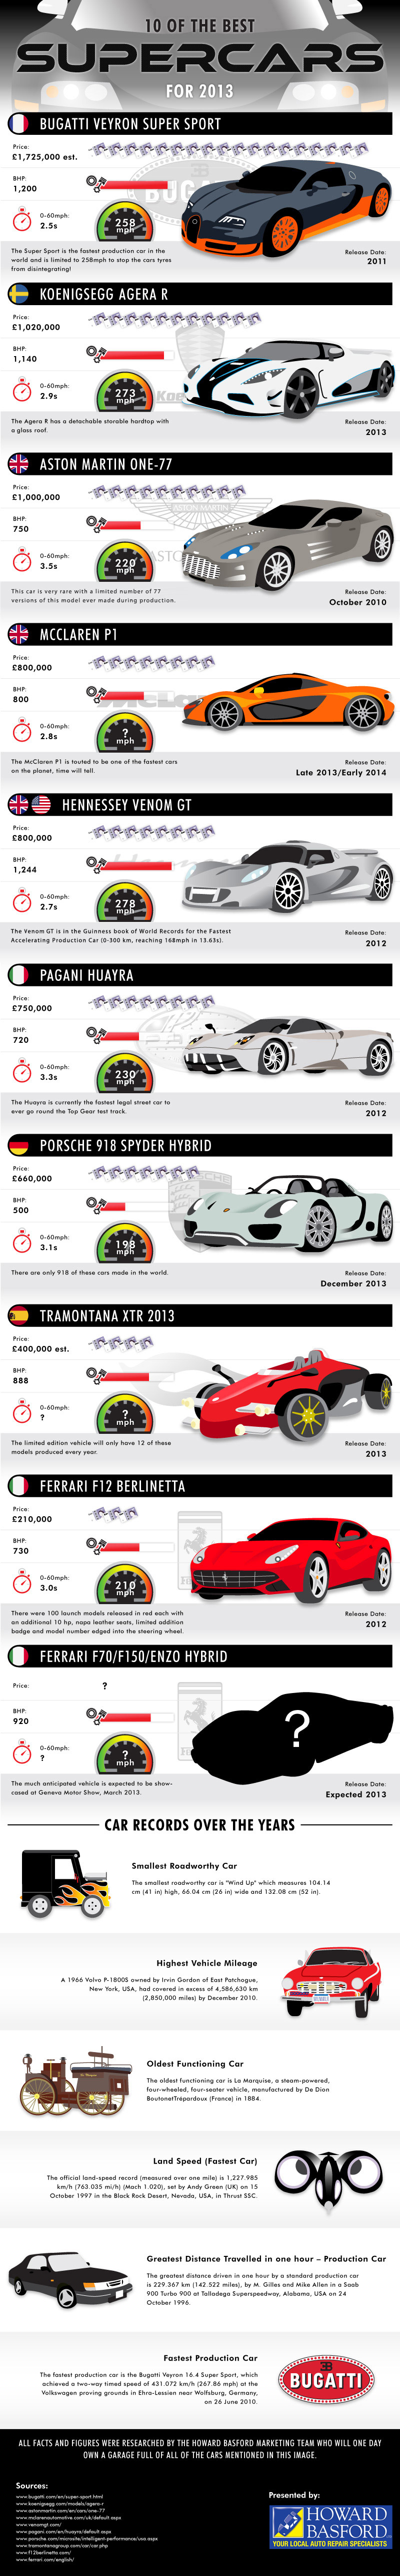 List of the Top 10 Fastest Super Cars in the World